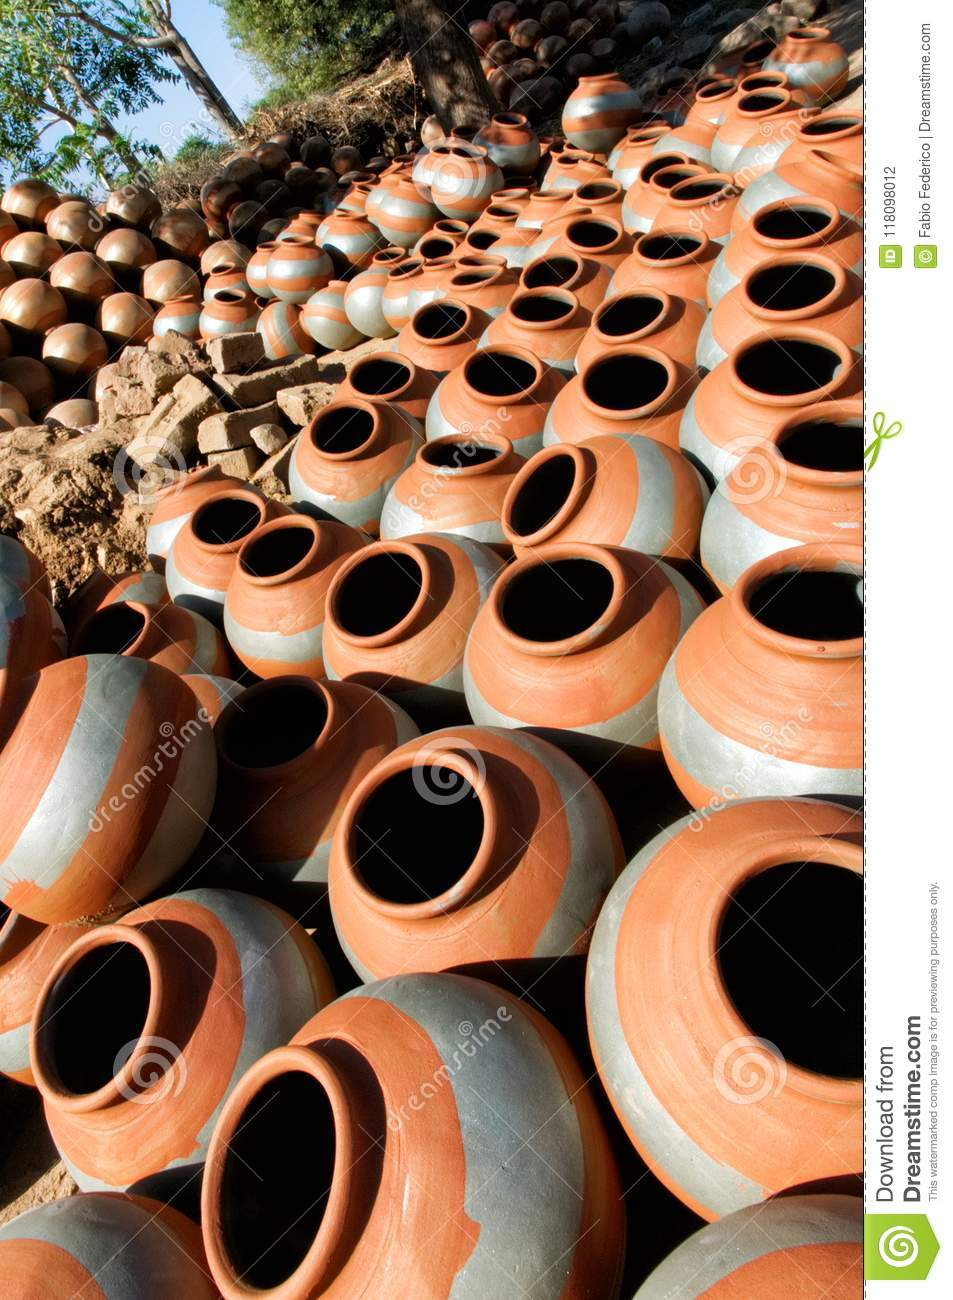 Round clay pots drying